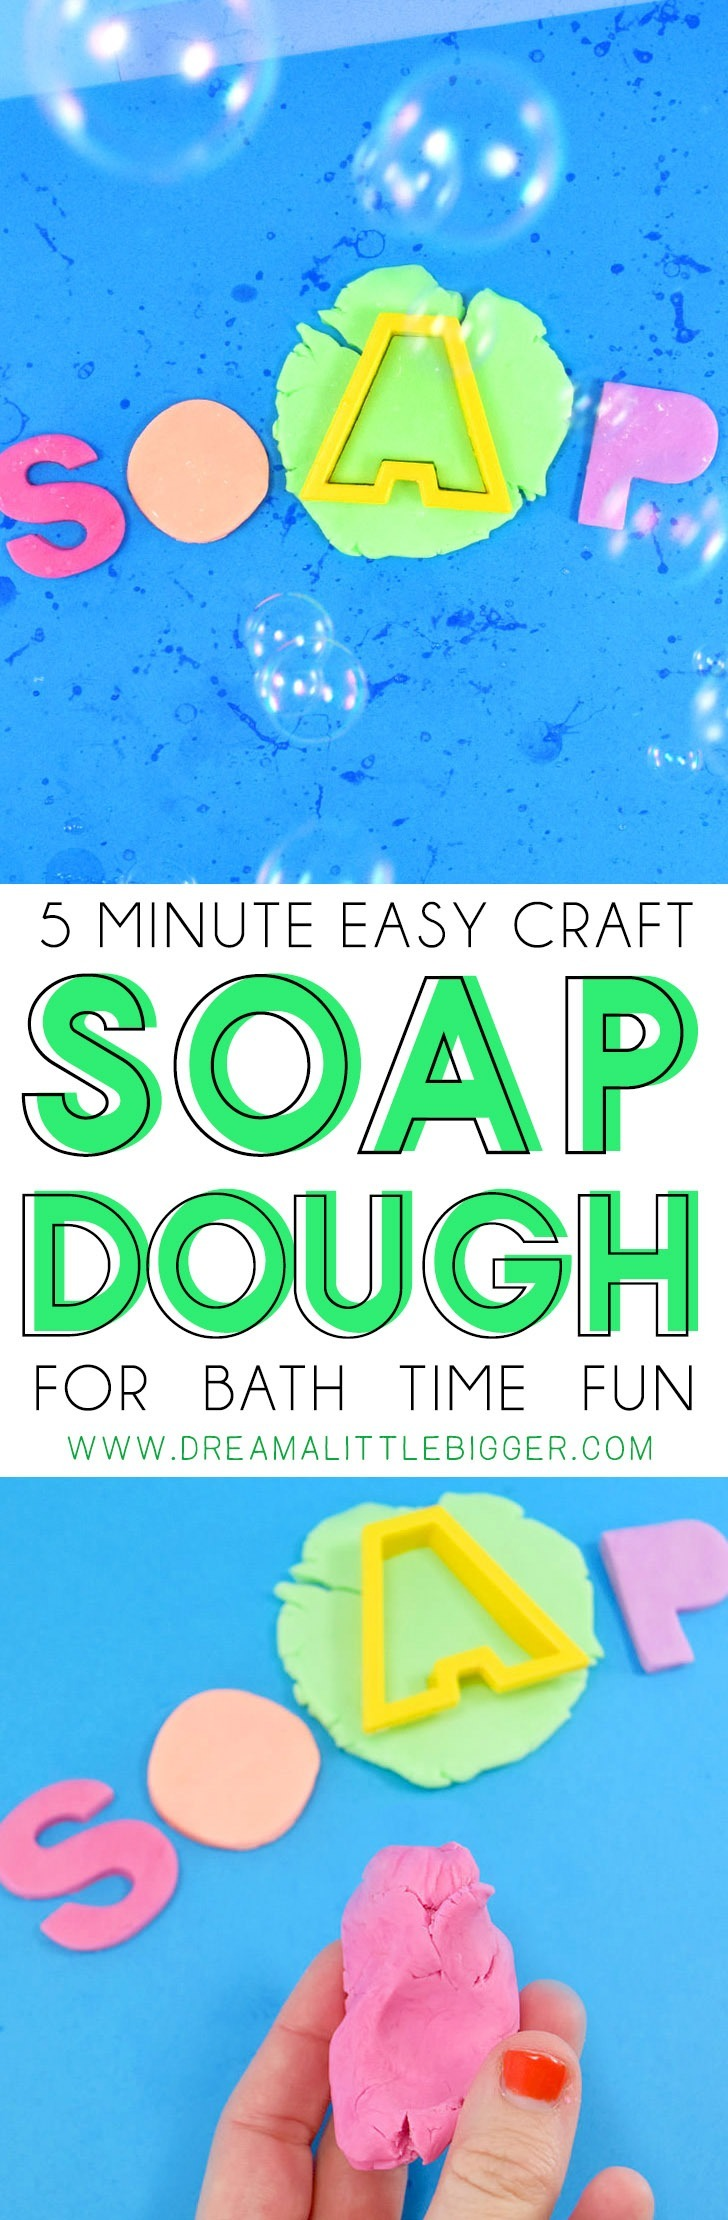 Soap dough is easy to make in only 5 minutes and is serious bath time fun!